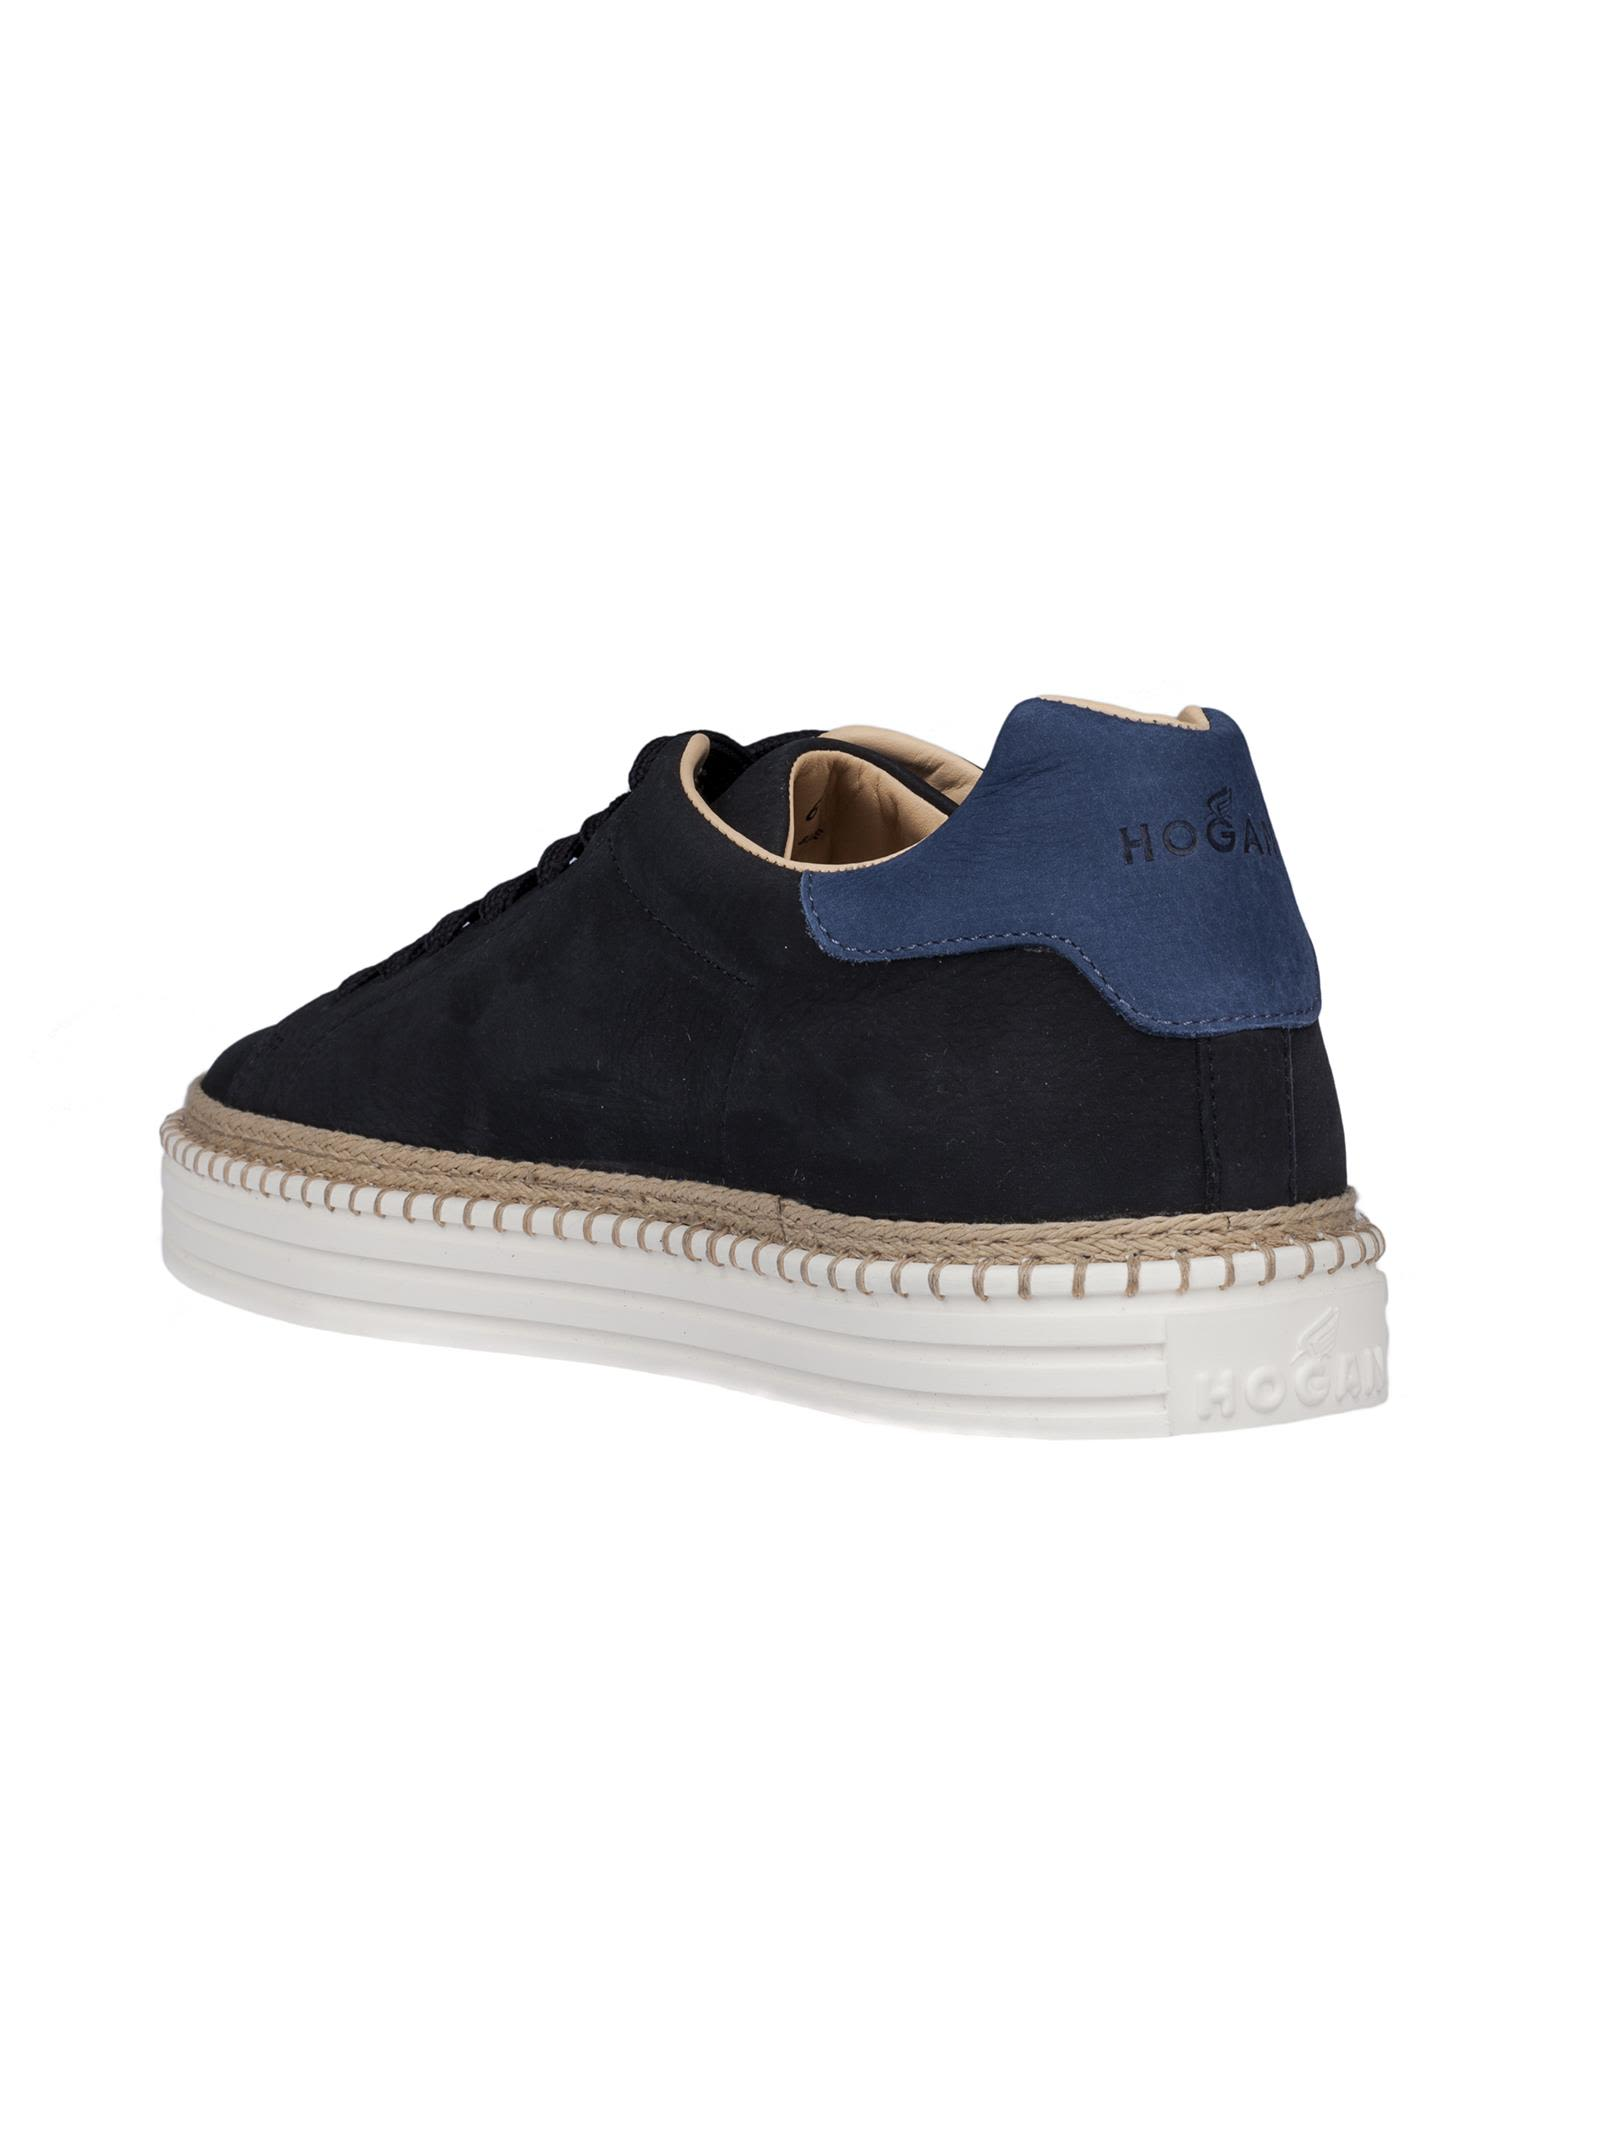 stitched sole sneakers - Blue Hogan NbuQwz